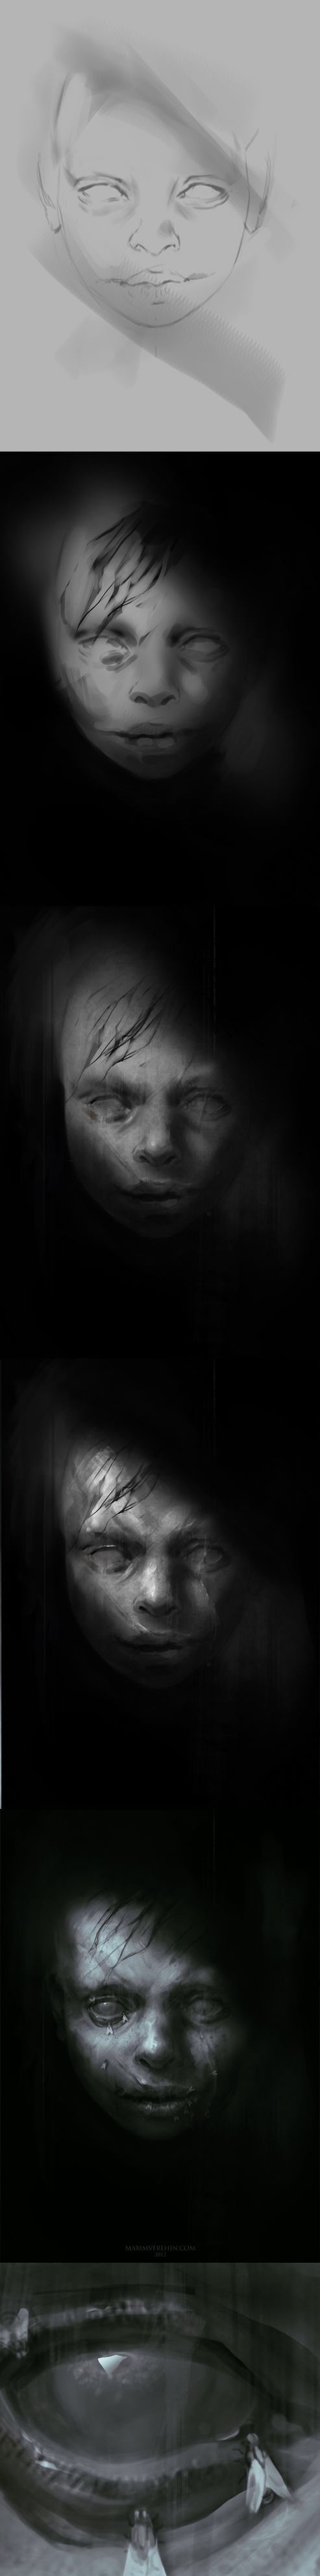 Lord of the Flies Process by Verehin